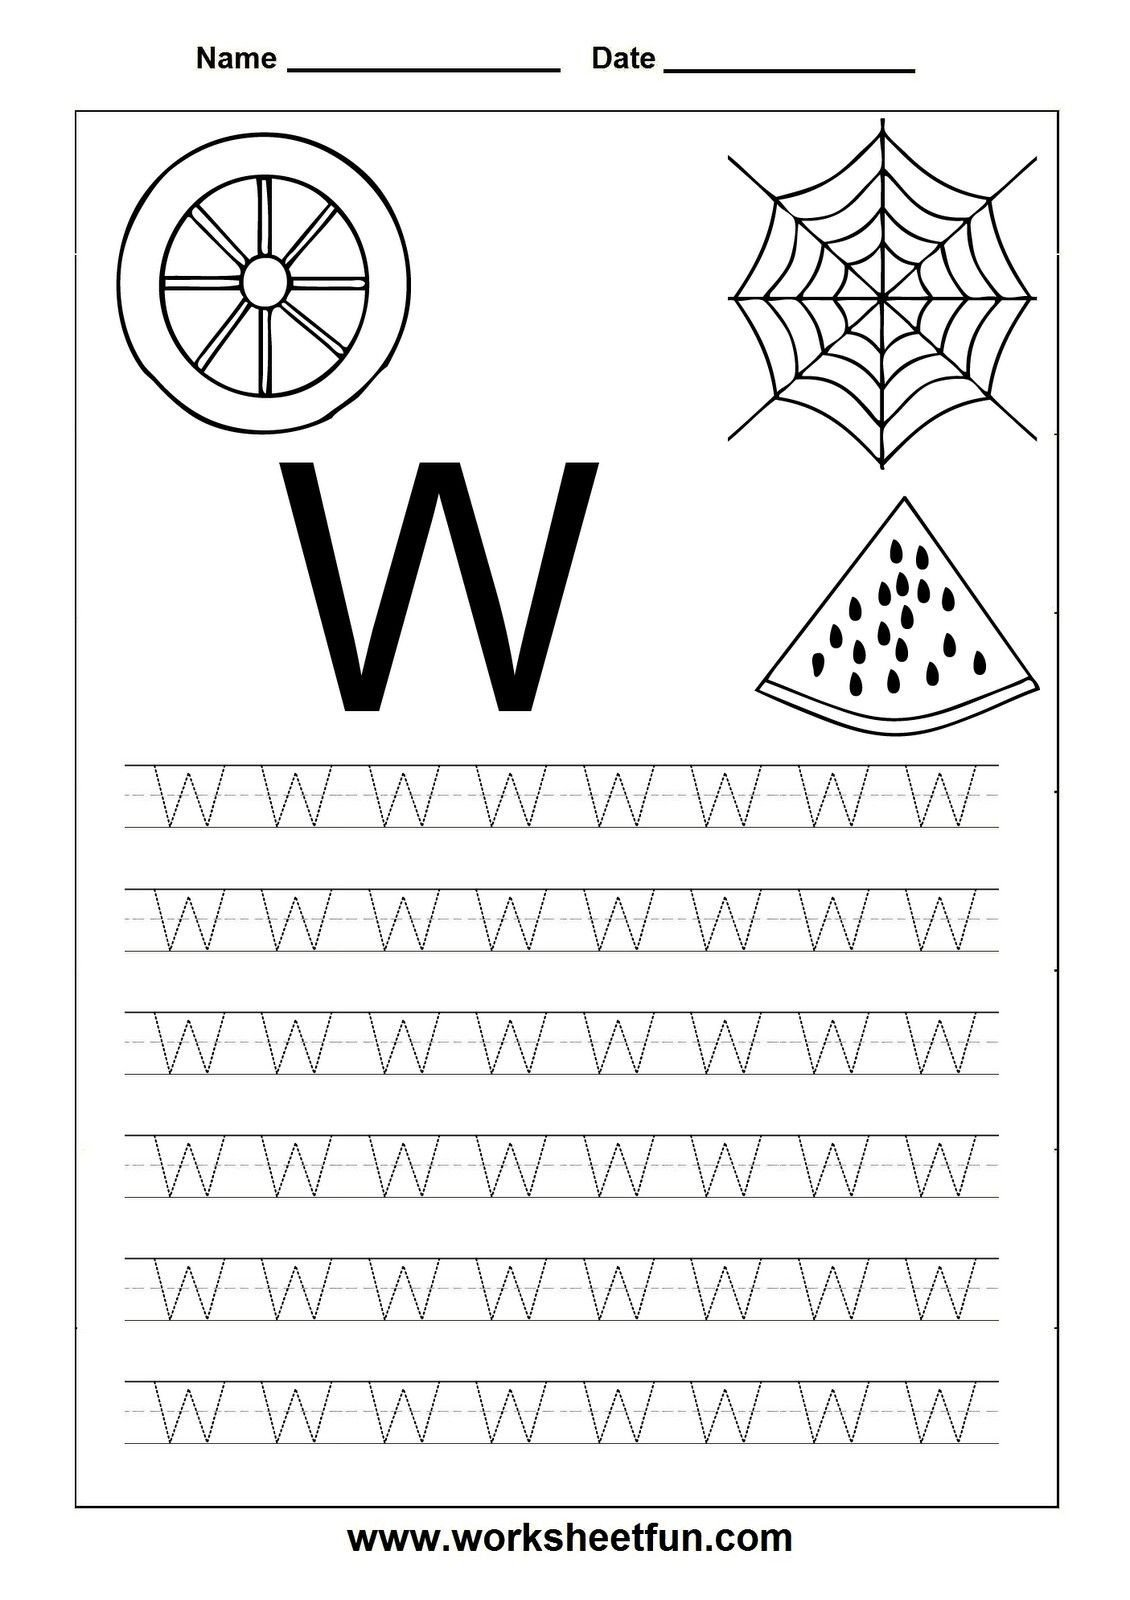 Tracing Lowercase Letters Worksheets 3 Worksheet Trace Lowercase Letters In 2020